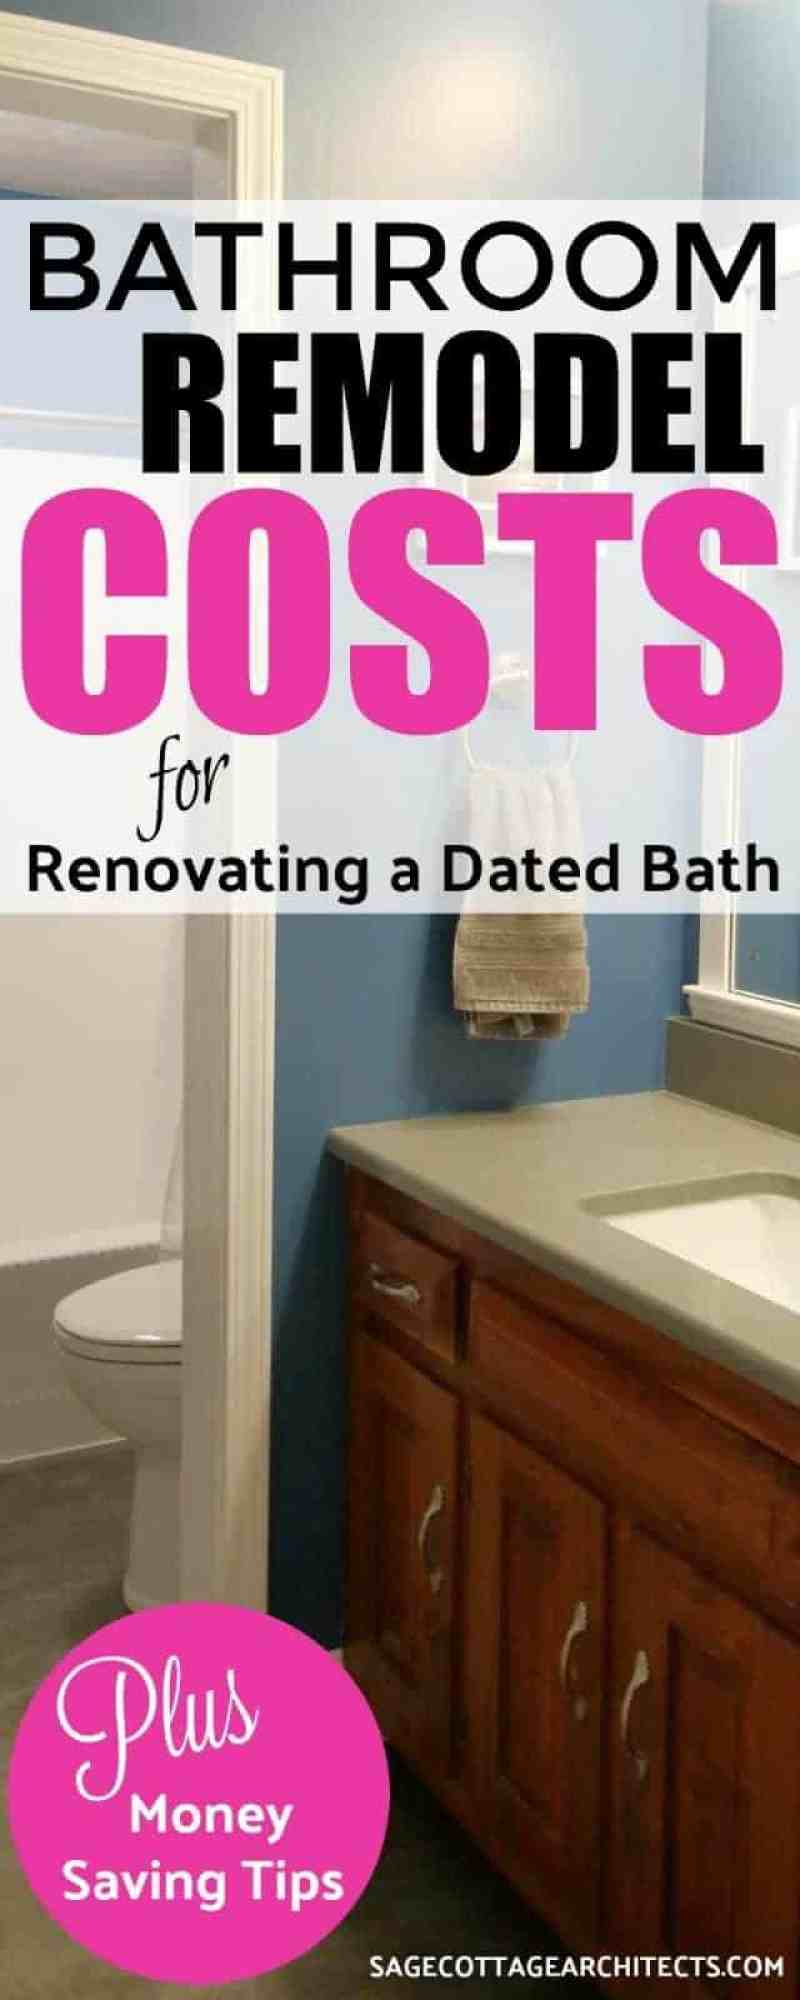 Bathroom remodel costs for a dark grey and blue bathroom with hickory vanity after remodeling